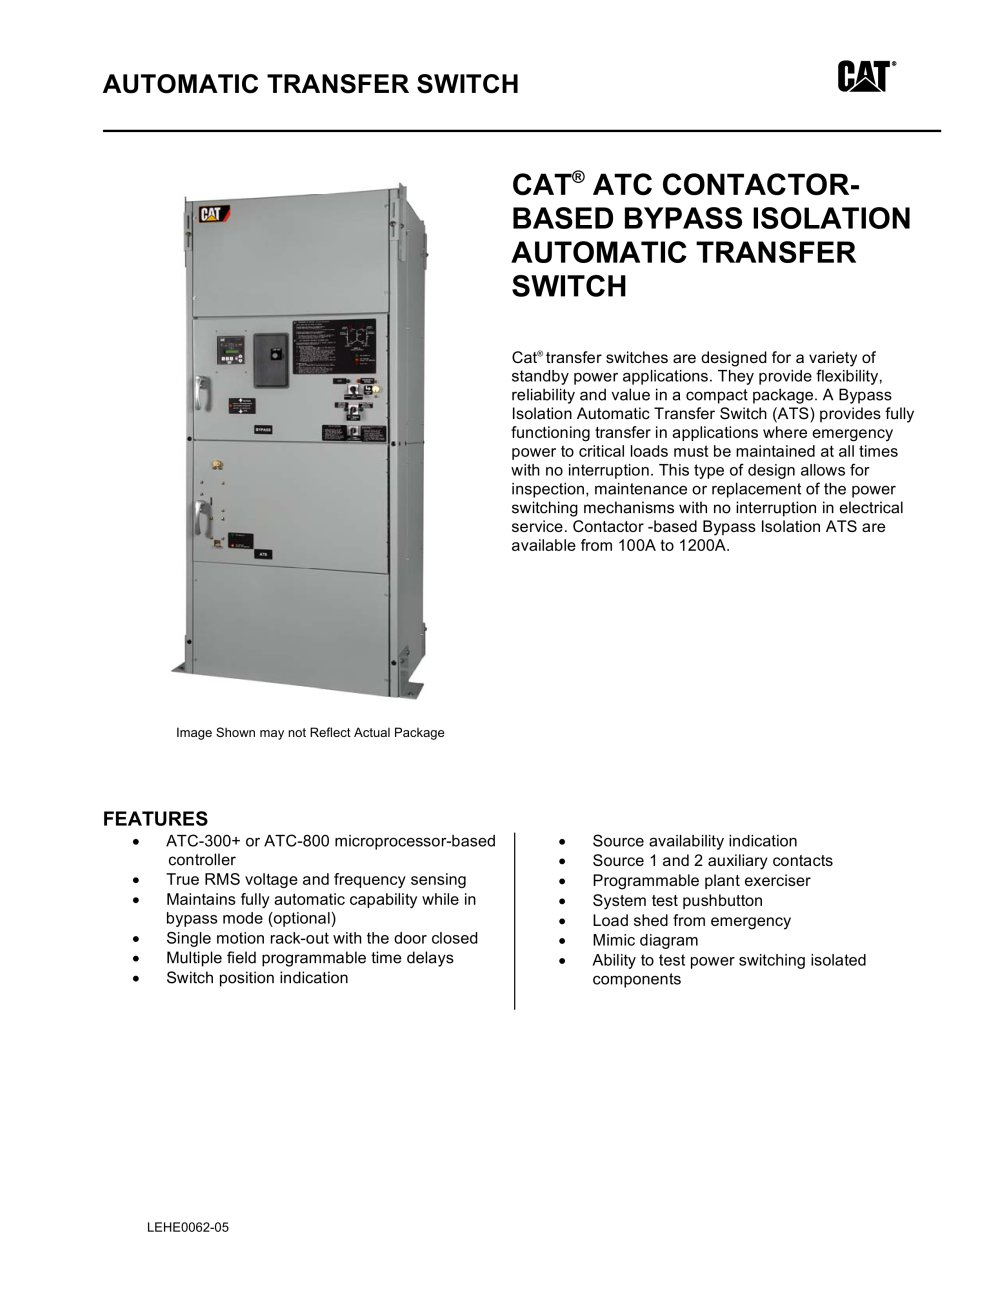 hight resolution of atc contactor based bypass isolation transfer switch 1 5 pages